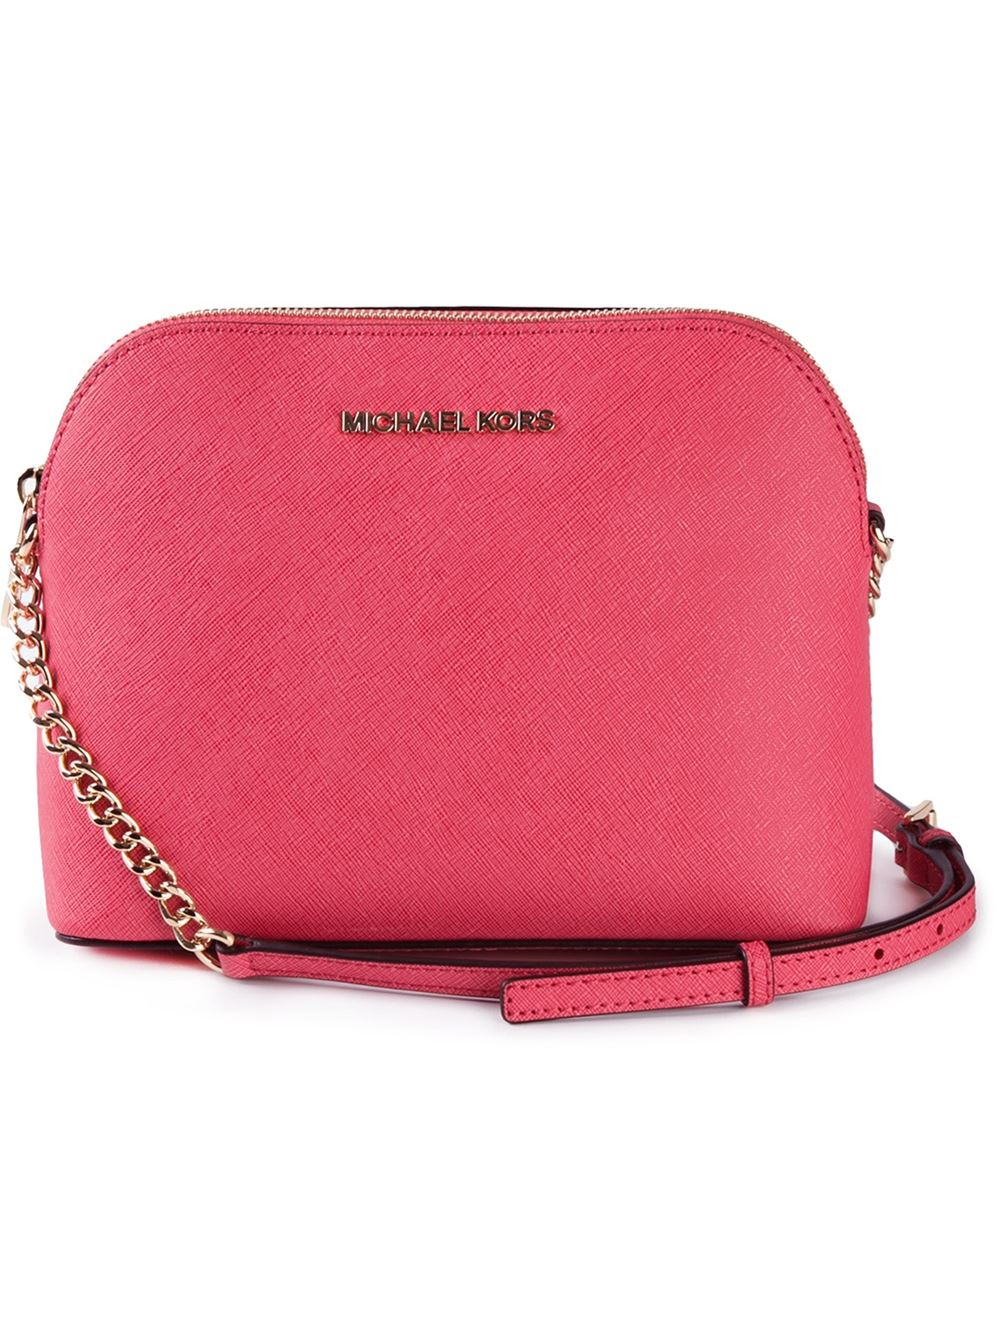 6b5ab74c036a15 Gallery. Previously sold at: Farfetch · Women's Michael Kors Cindy